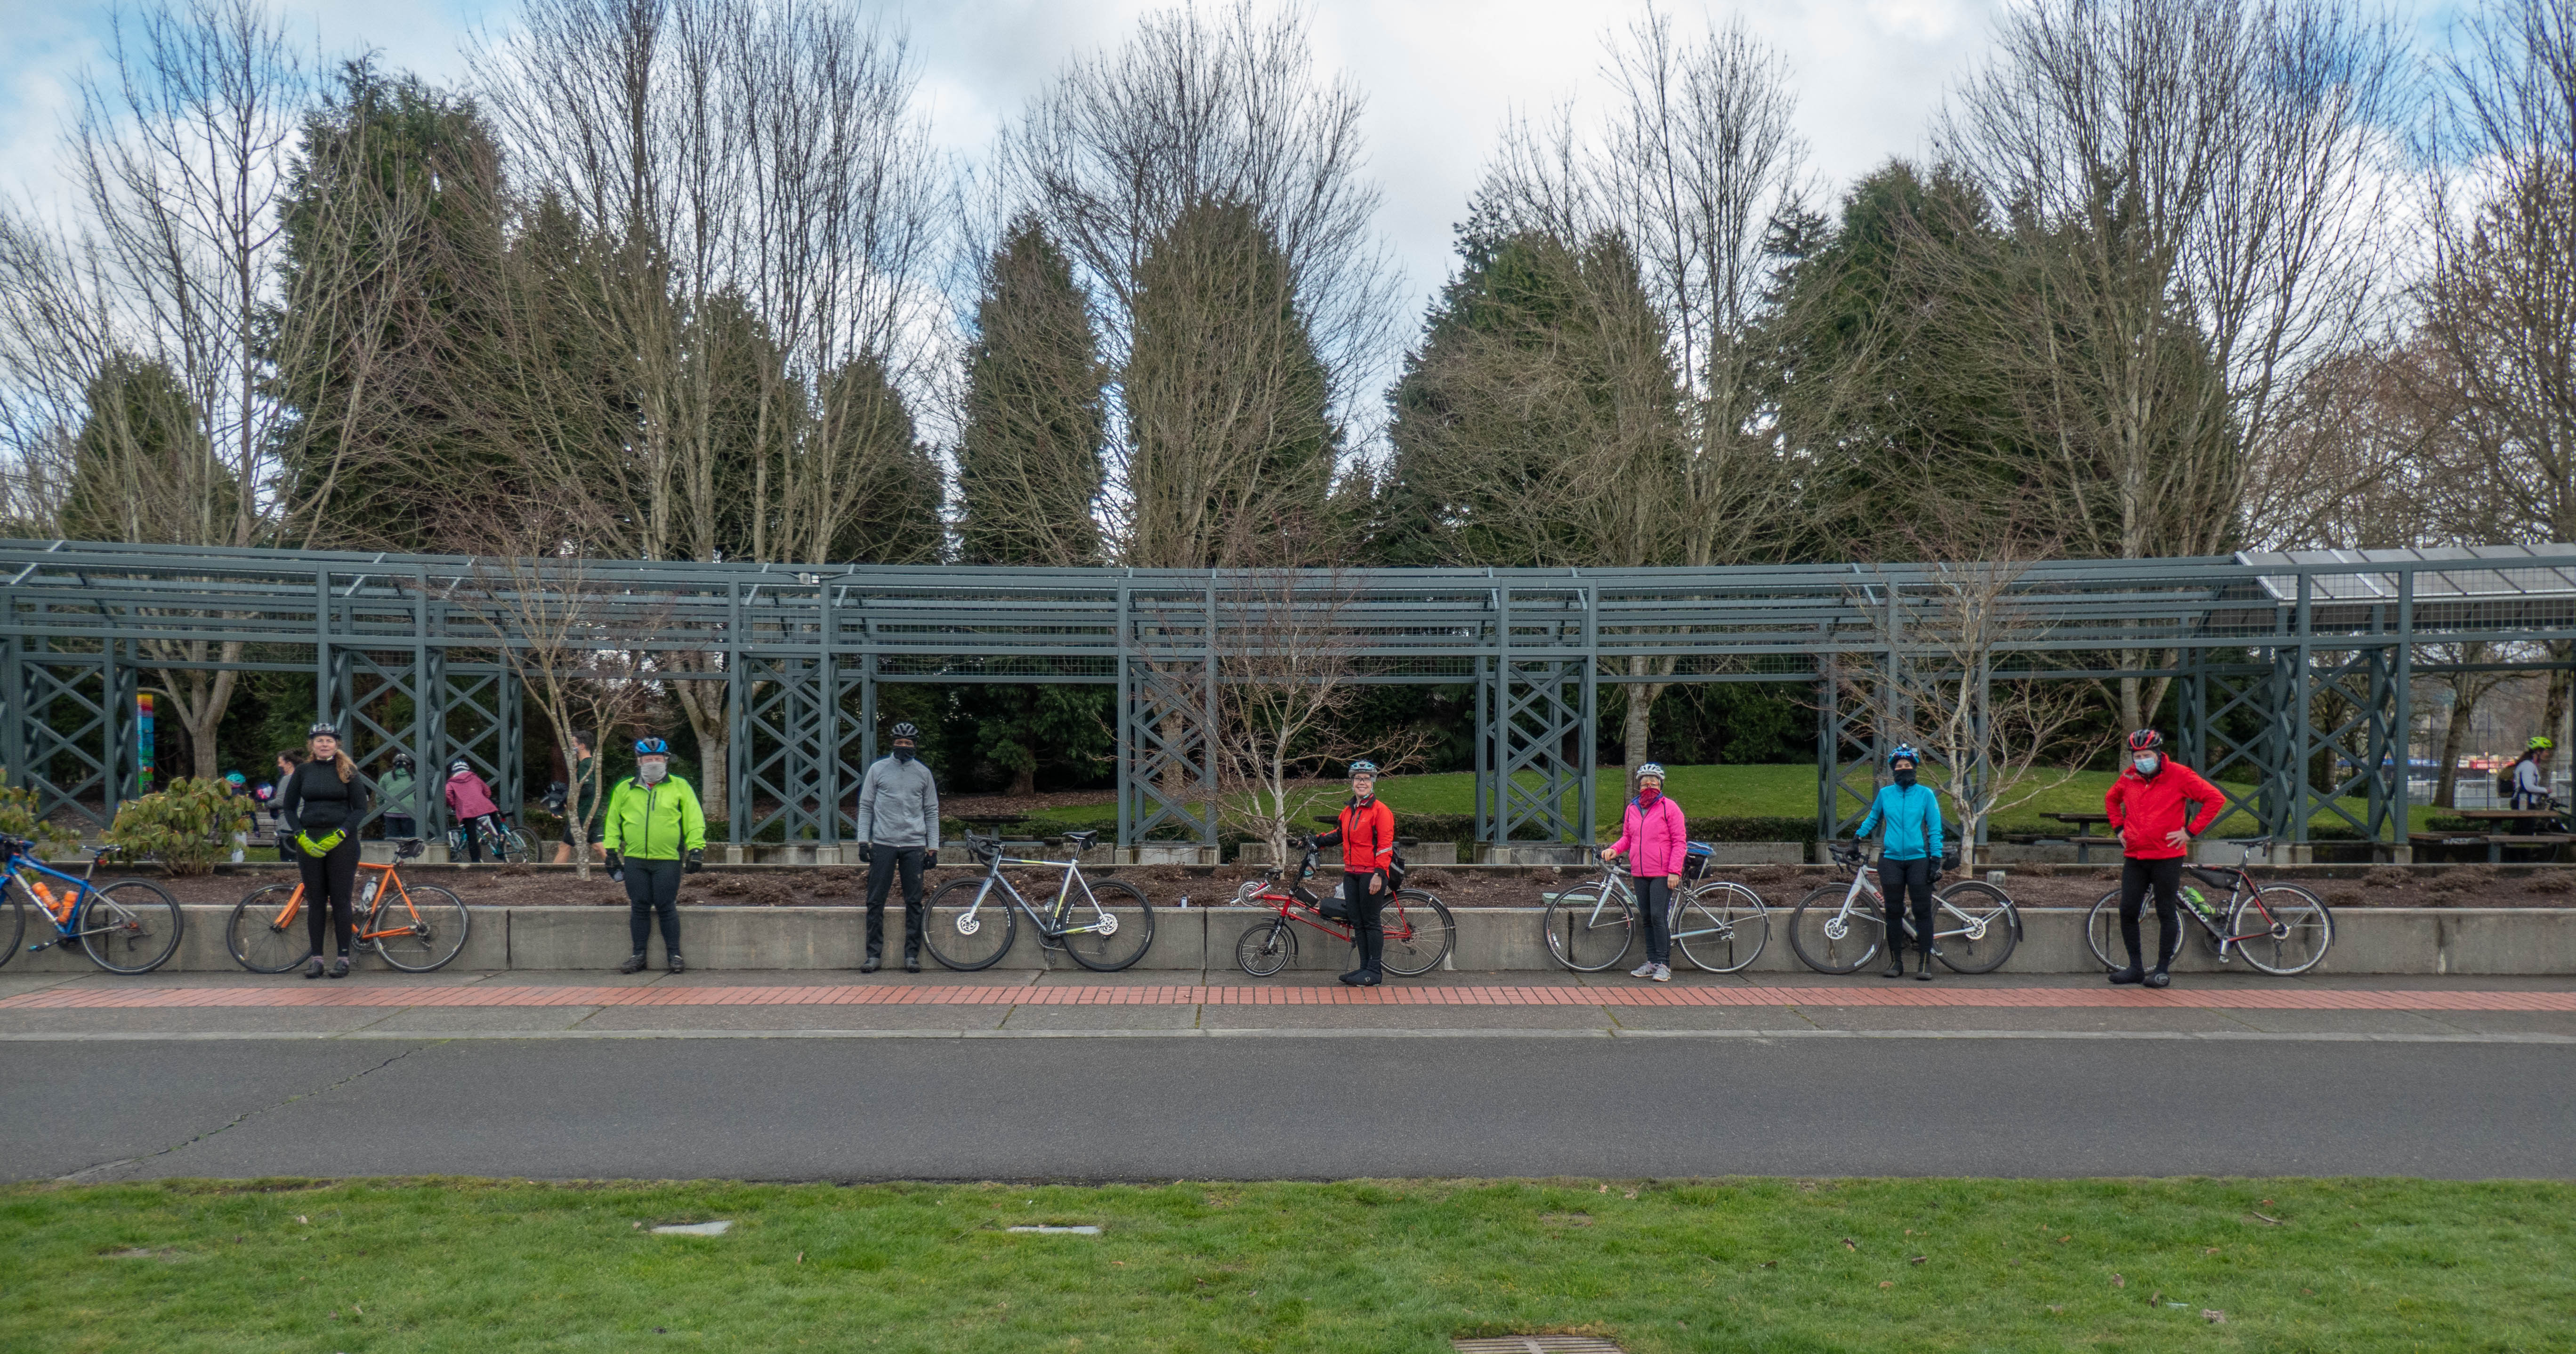 Group Photo at Wilmot Gateway Park in Woodinville, WA